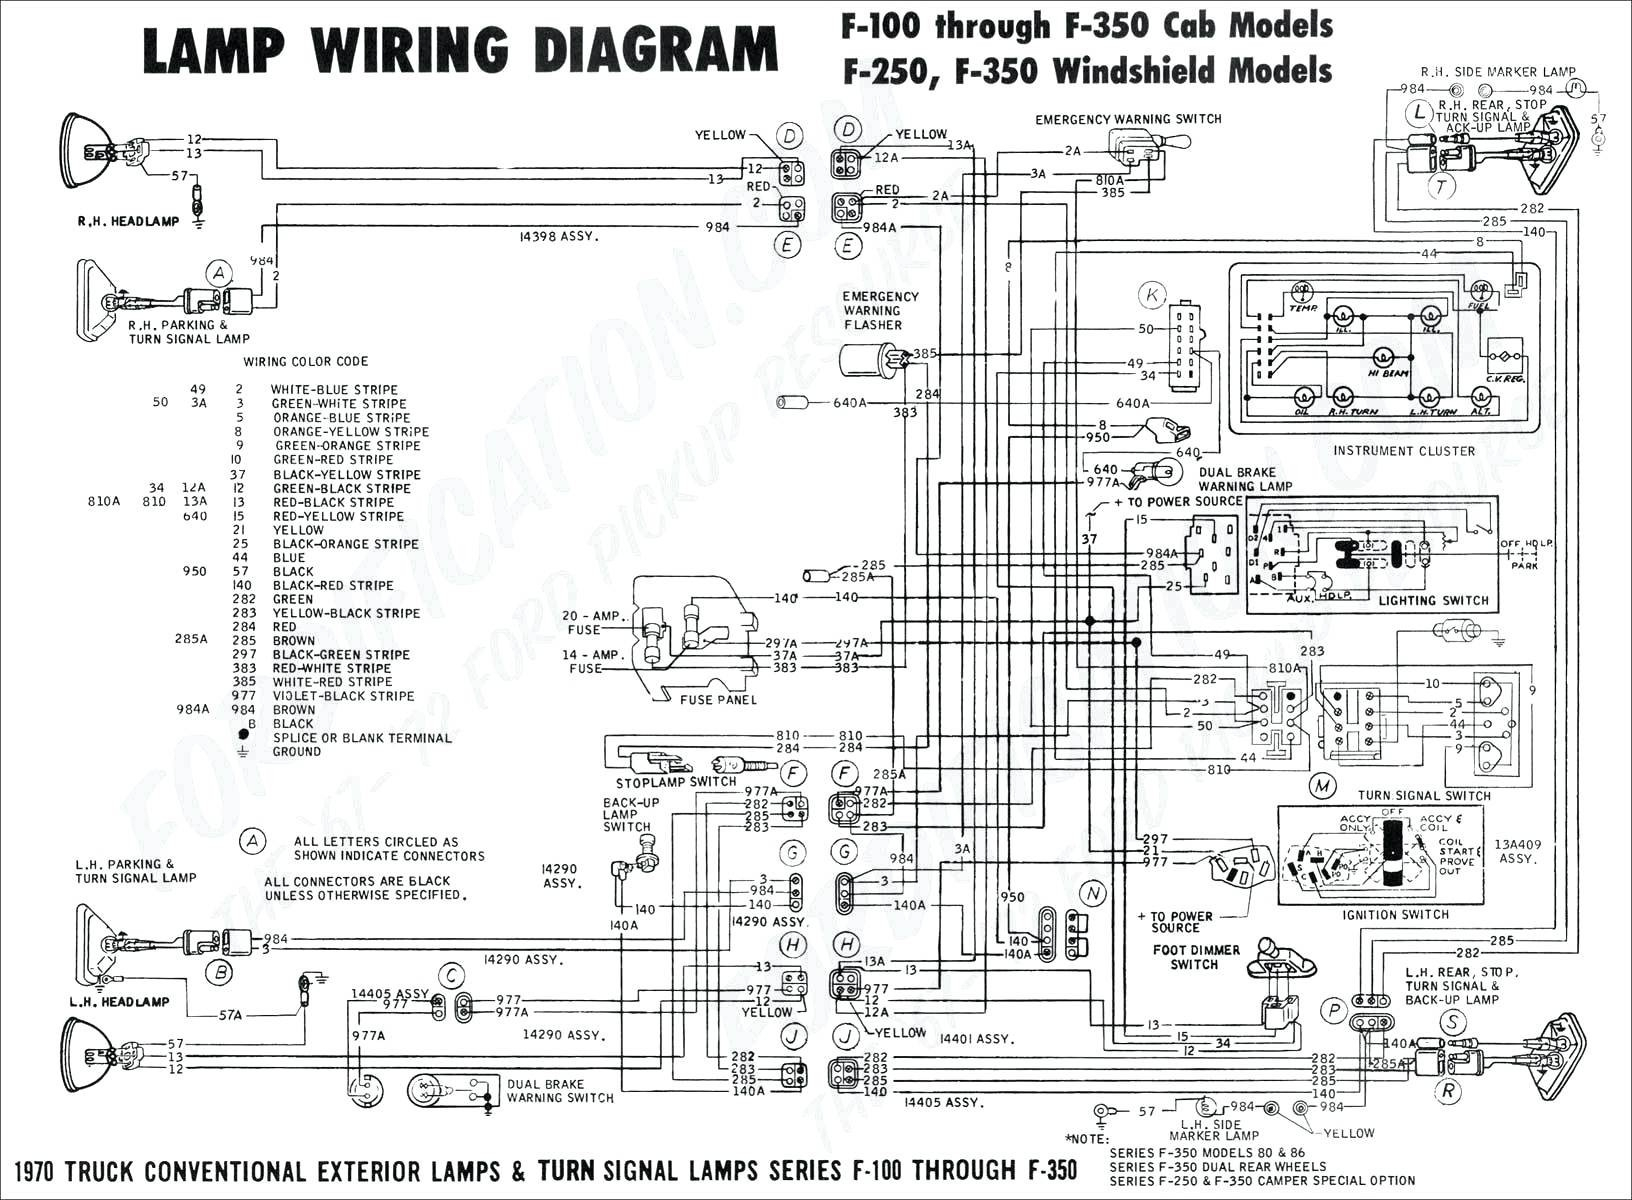 2004 chevy colorado trailer wiring diagram wiring diagram 2006 colorado wiring library  wiring diagram 2006 colorado wiring